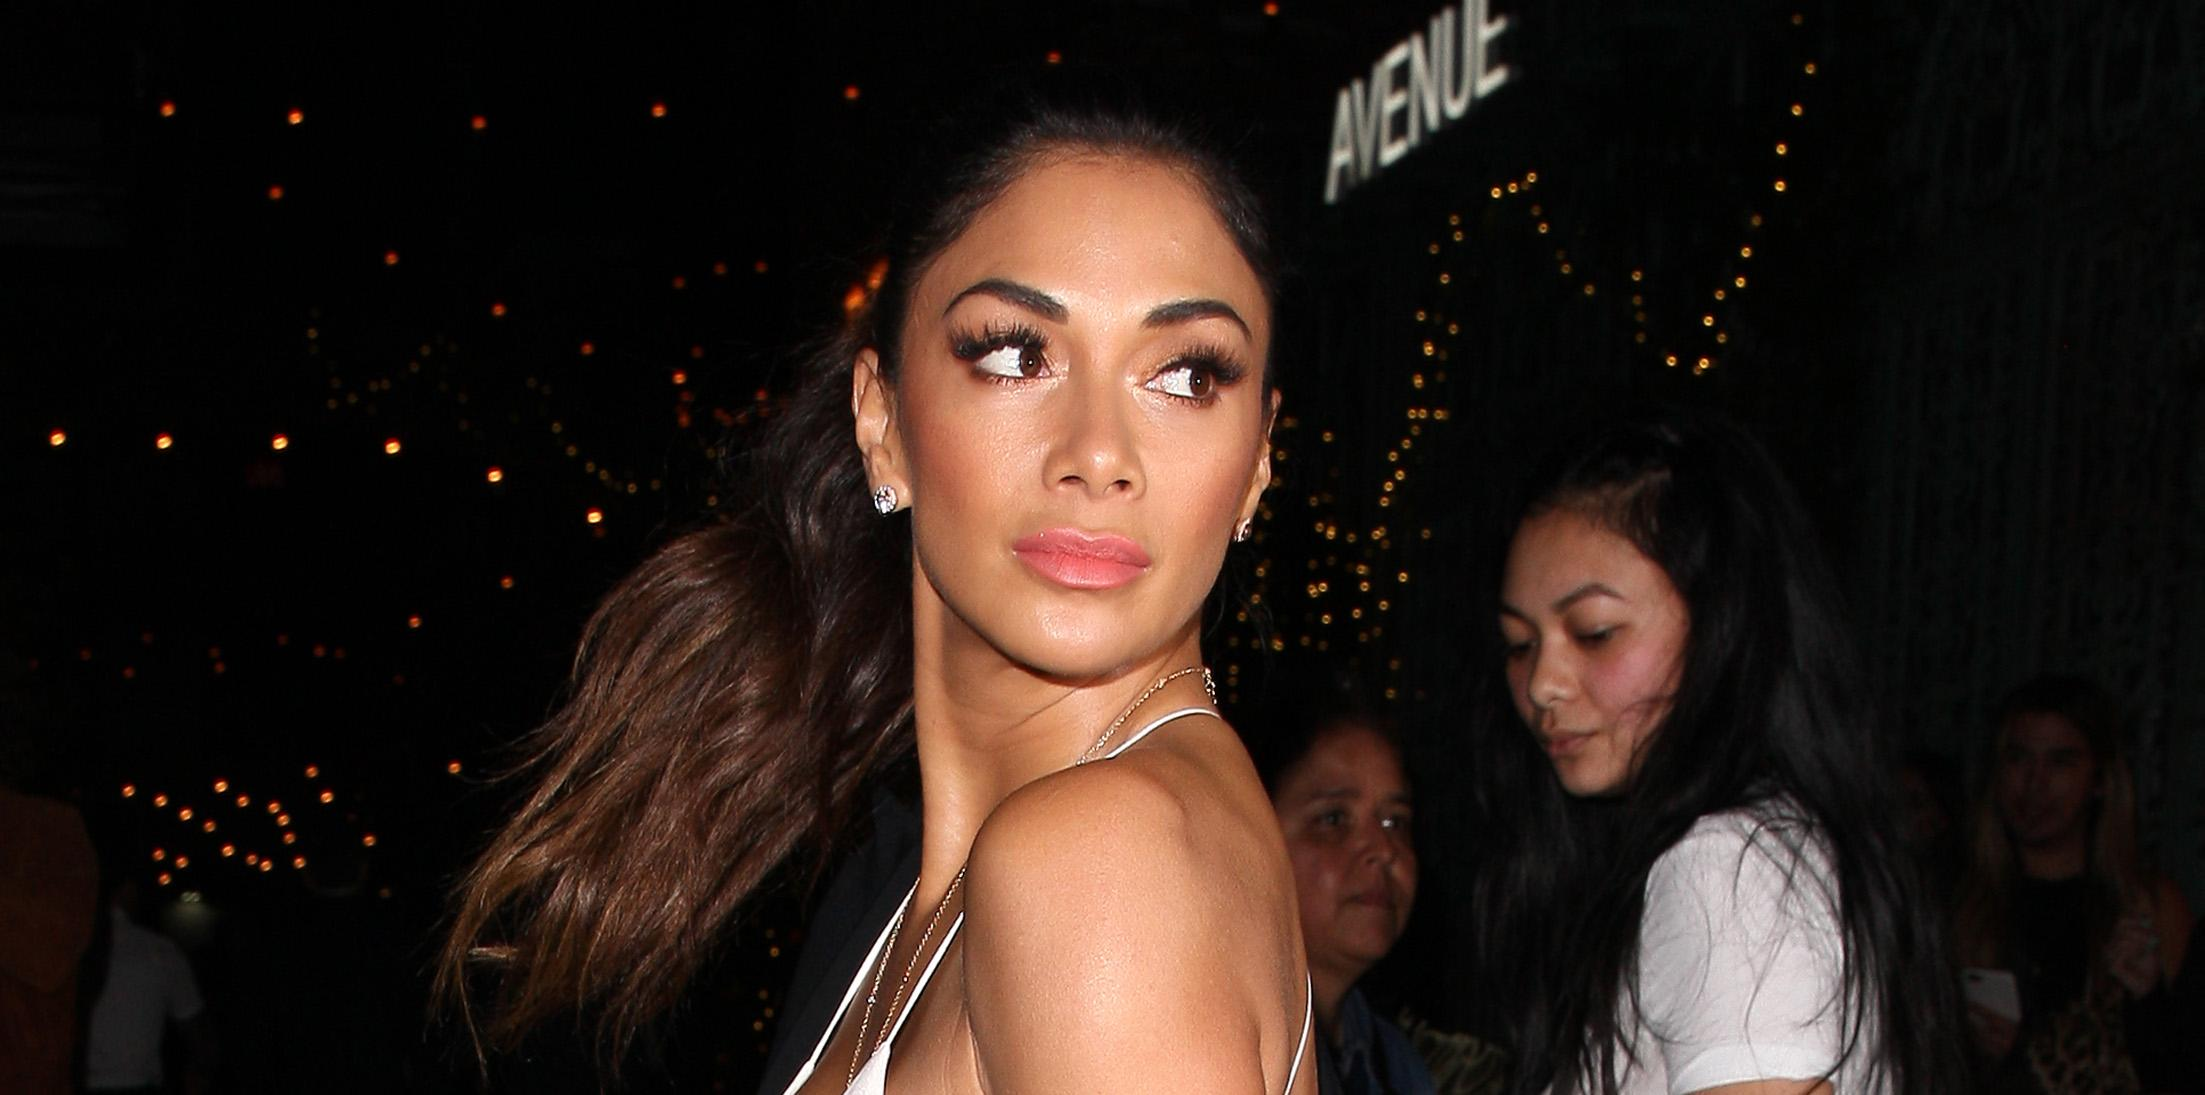 Nicole Scherzinger goes to Beauty and Essex restaurant for dinner after attending a premiere